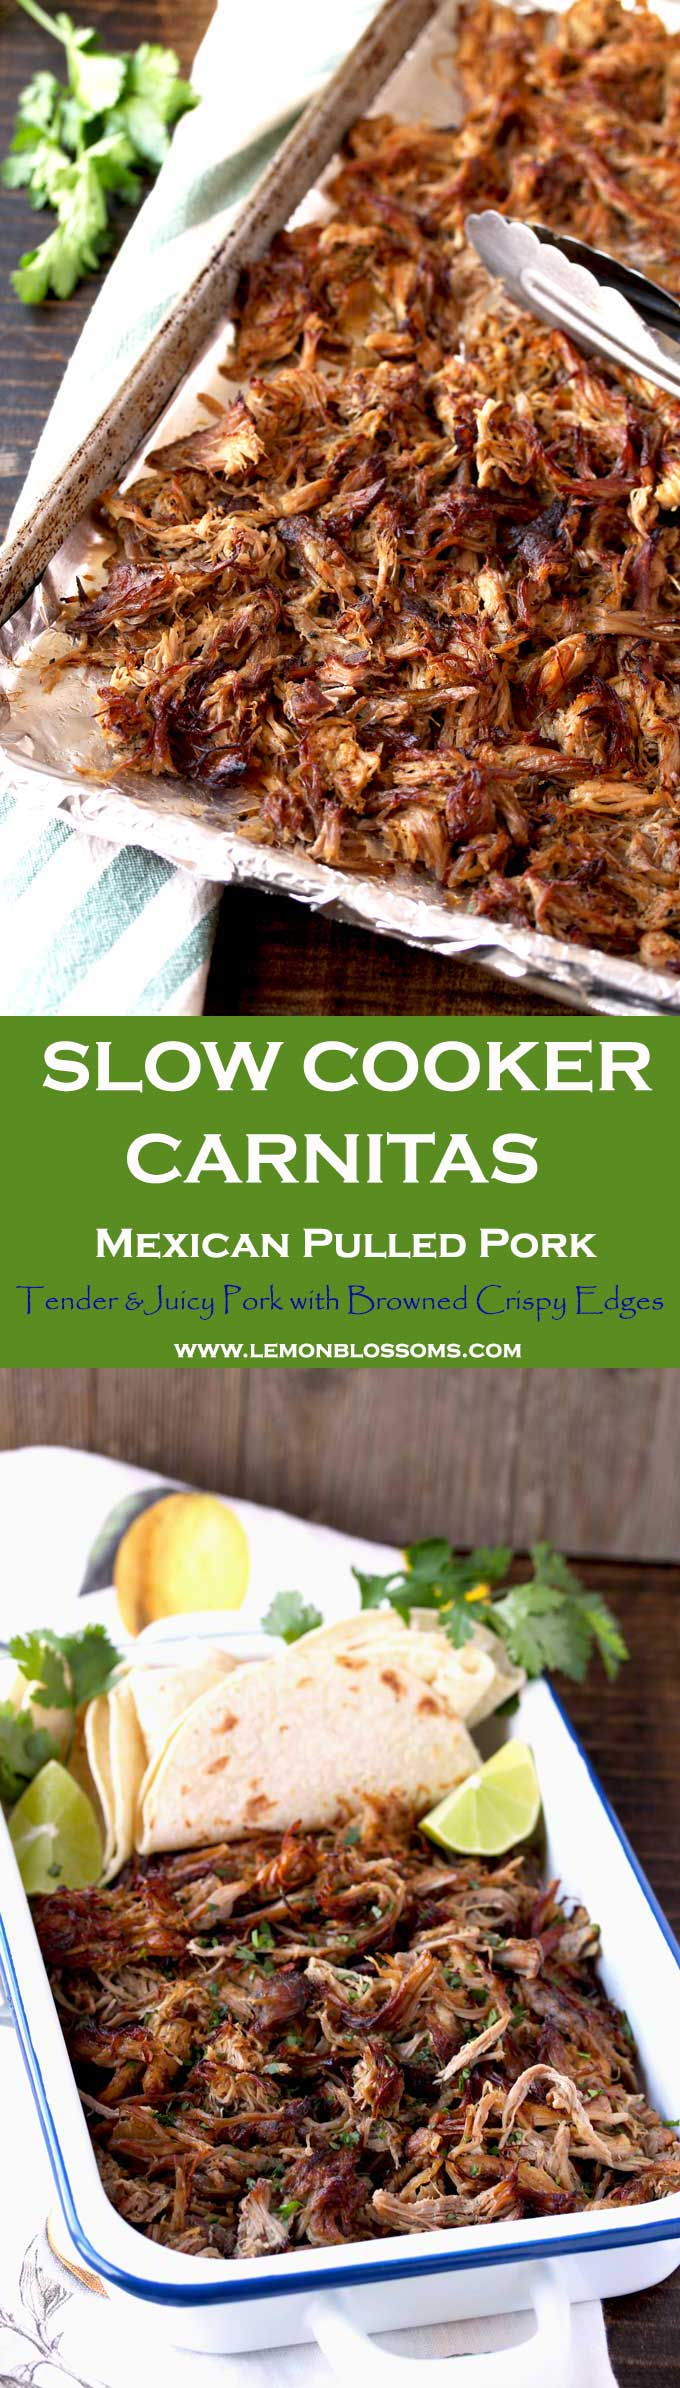 This Slow Cooker Carnitas are easy to make, flavorful, juicy and tender with well browned crispy edges. As delicious as authentic Mexican Carnitas minus the lard!  Cooked in the crock pot with spices, garlic, onions and citrus juice resulting in a dish everyone would love. Perfect for tacos, burritos, salads and tortas. #carnitas #pulledpork #slowcooker #crockpot #Mexican